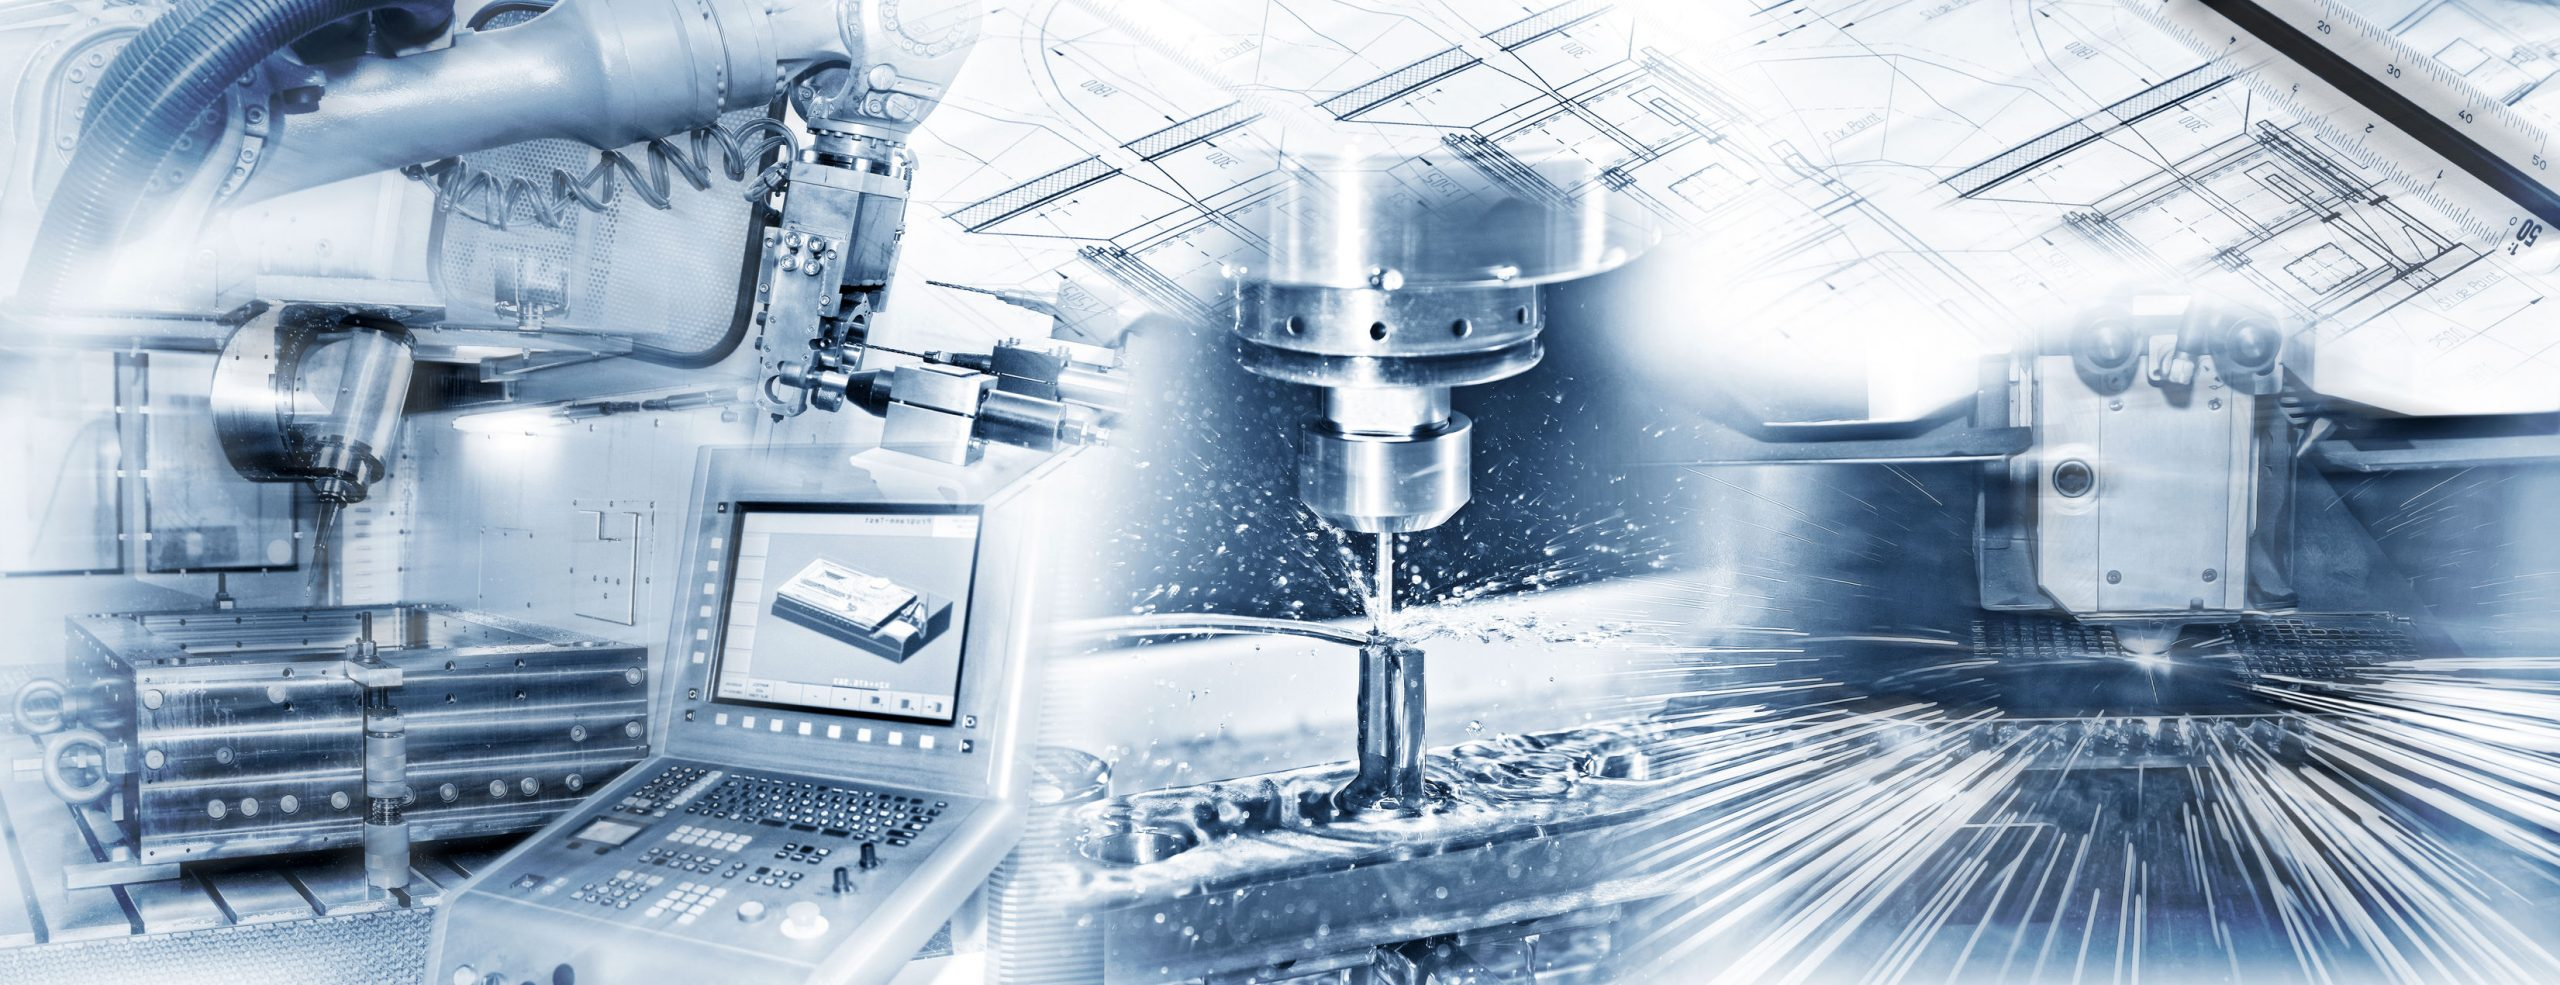 Duretec production with cnc machine, drilling and welding and construction drawing in industrial operation.